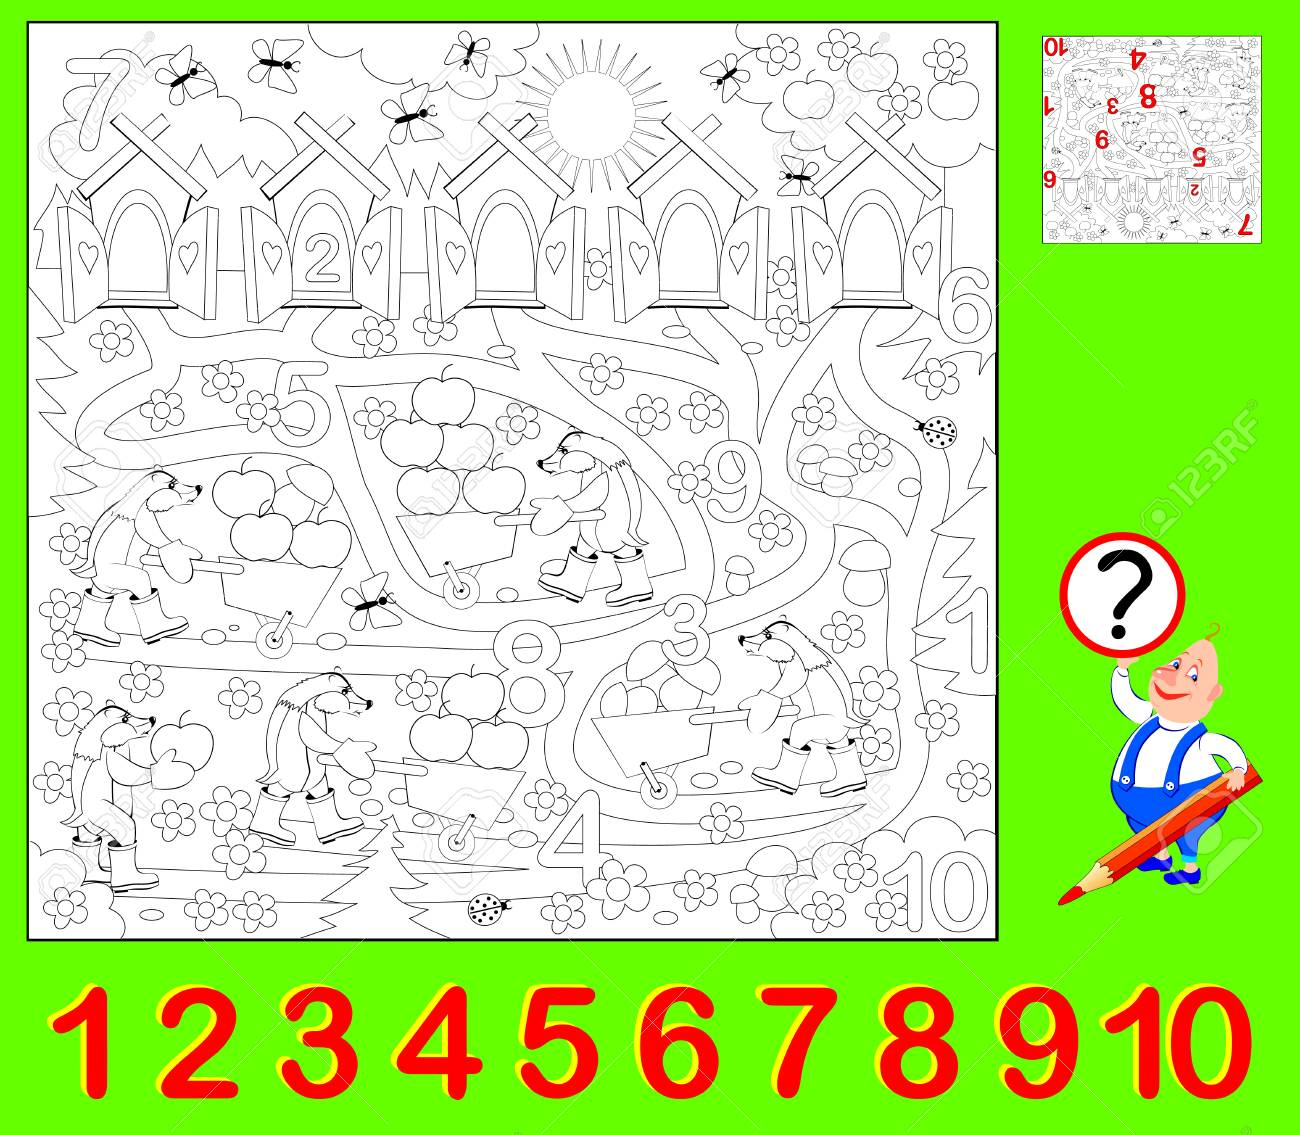 Educational Page For Young Children Need To Find The Hidden Numbers And Paint Them